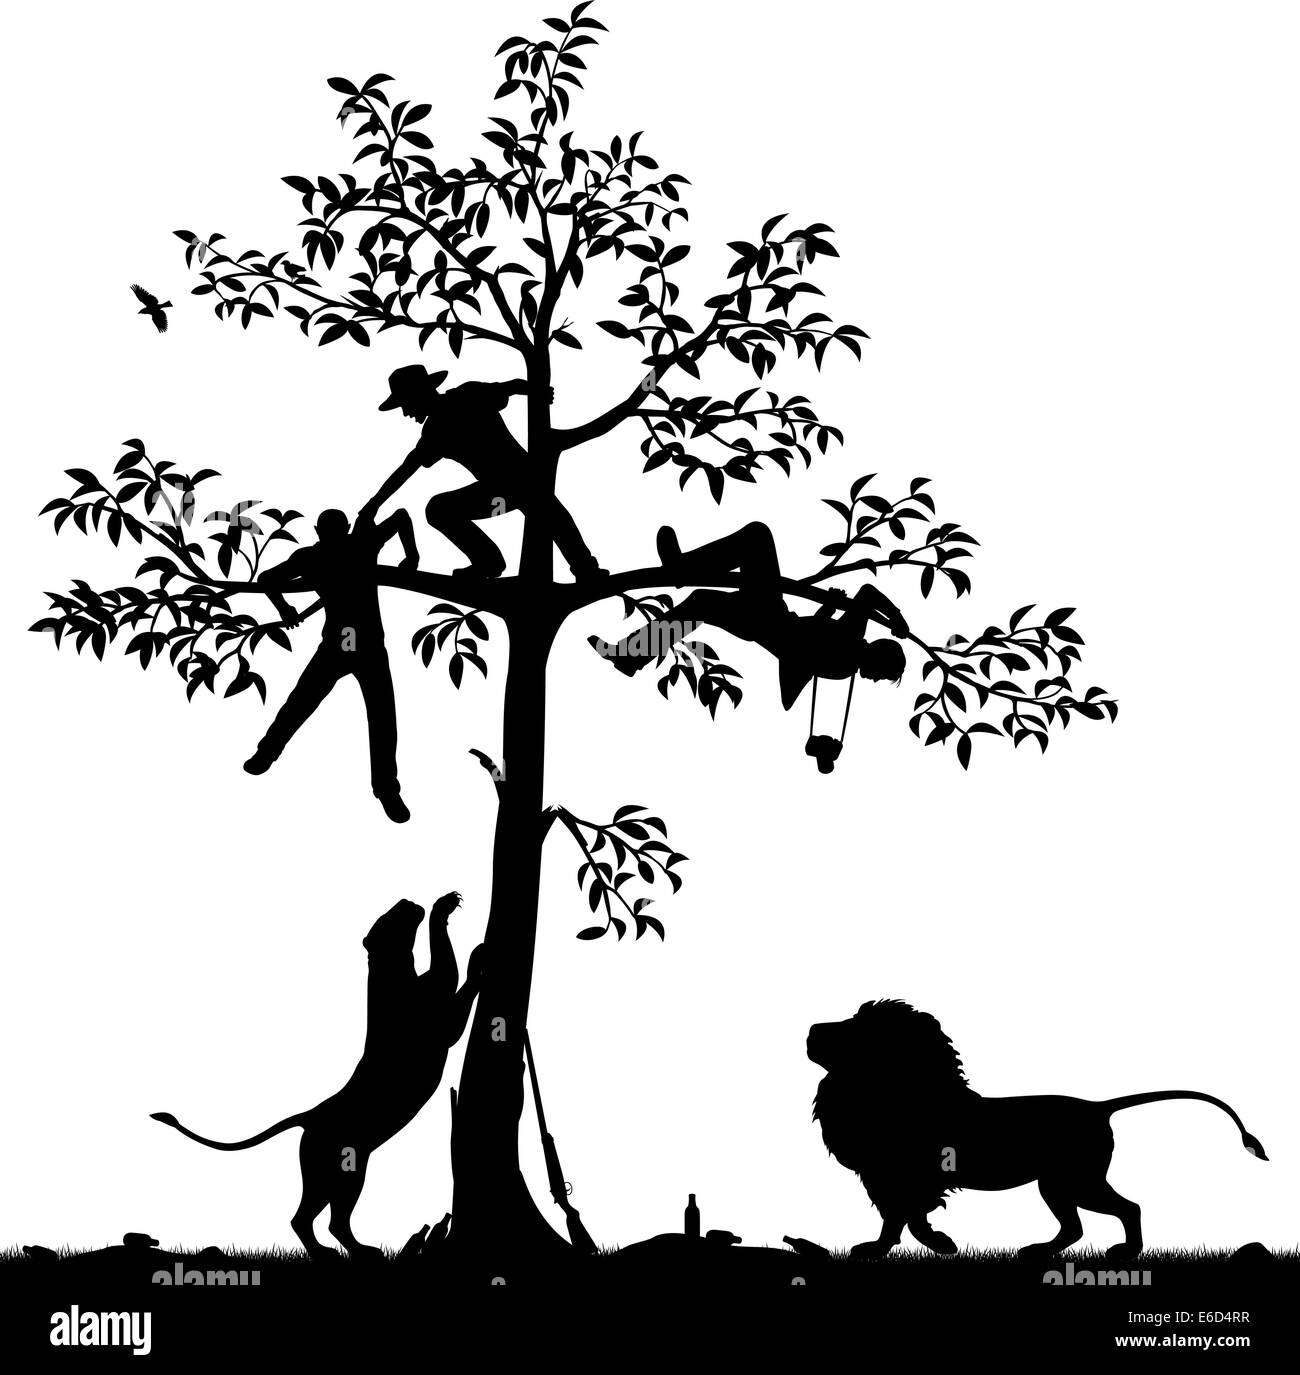 Editable vector silhouette of three men chased into a tree by a pair of lions with all figures as separate objects - Stock Vector